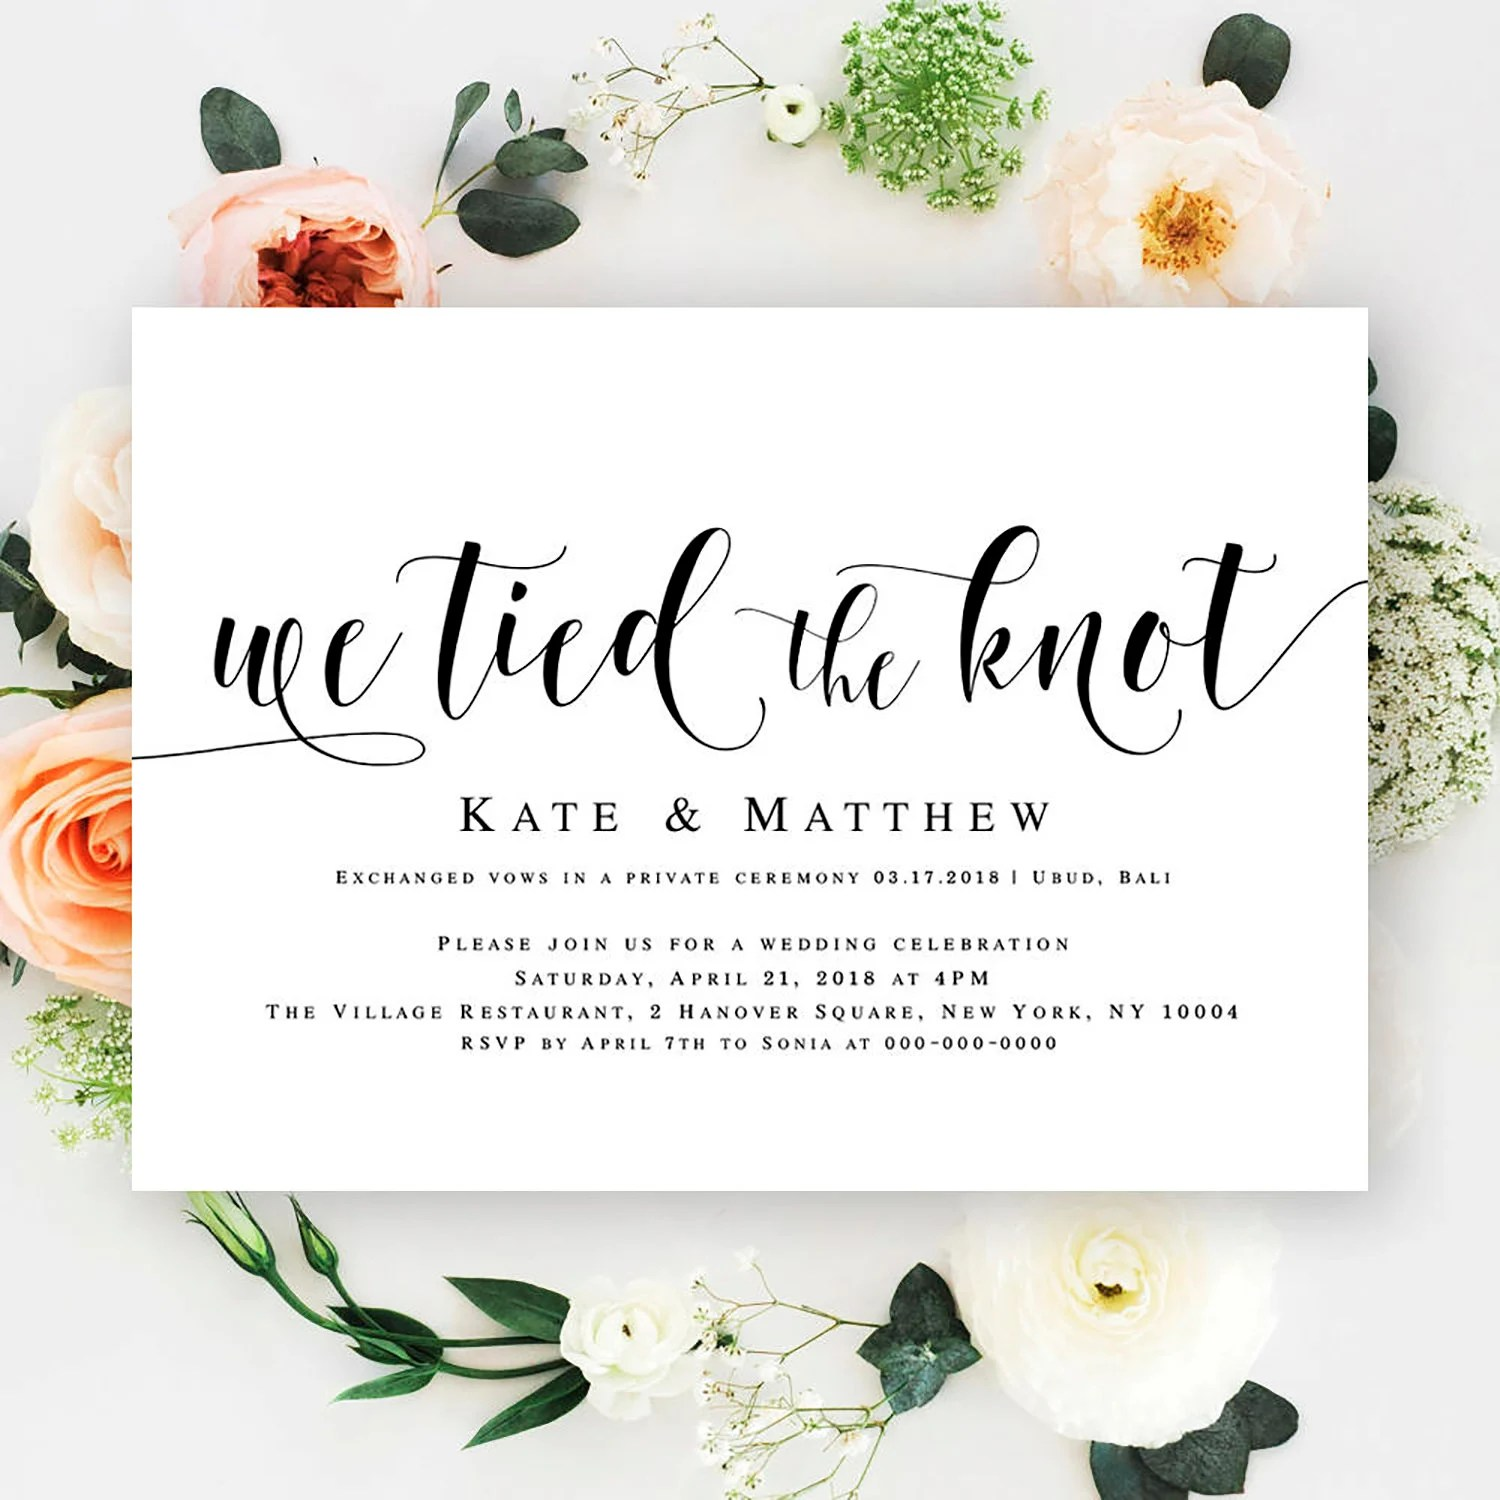 We tied the knot invitations Editable wedding invitation Post Etsy